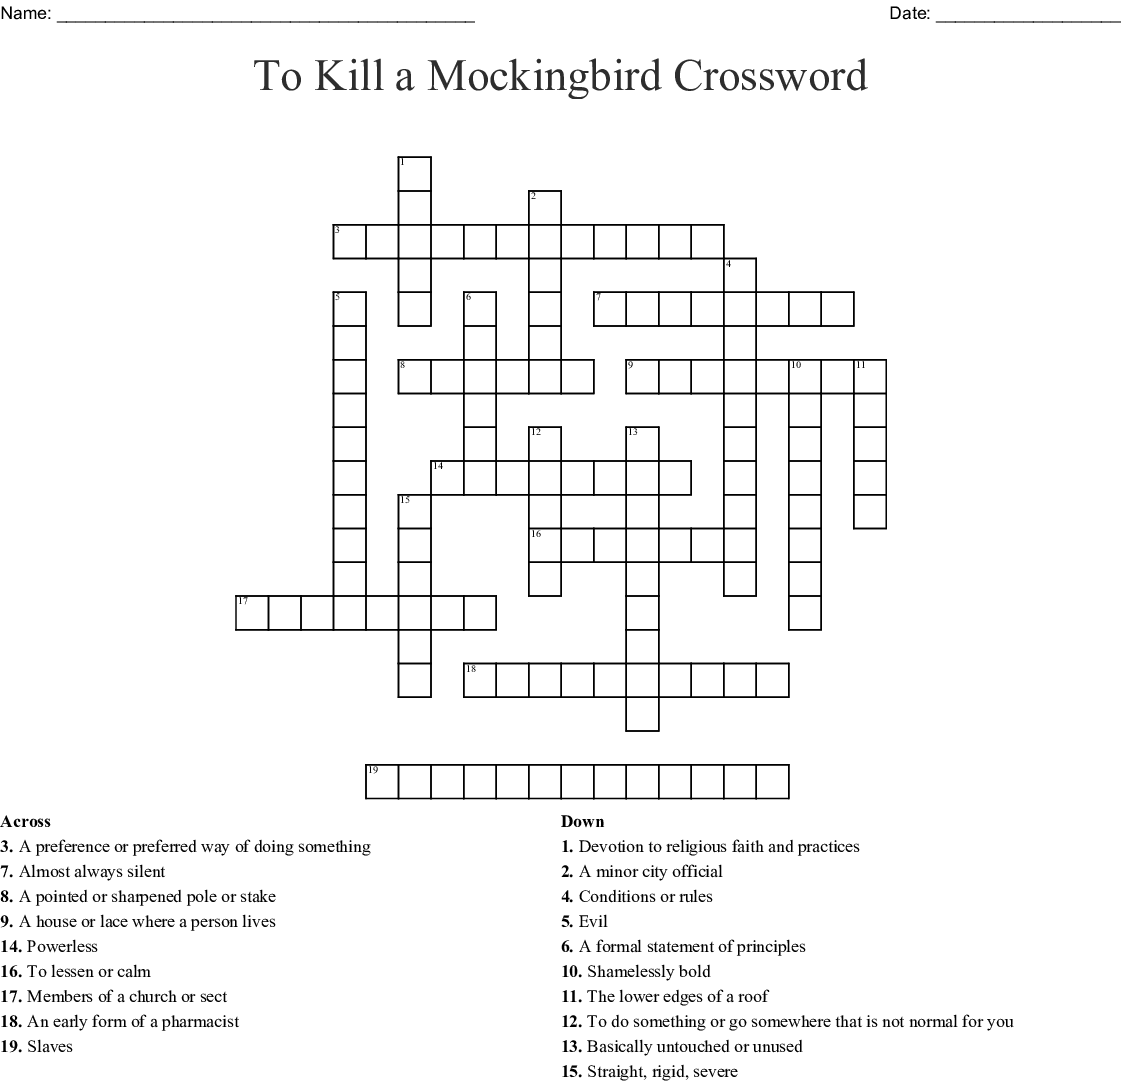 To Kill A Mockingbird Chapter 1 Vocabulary Words Crossword